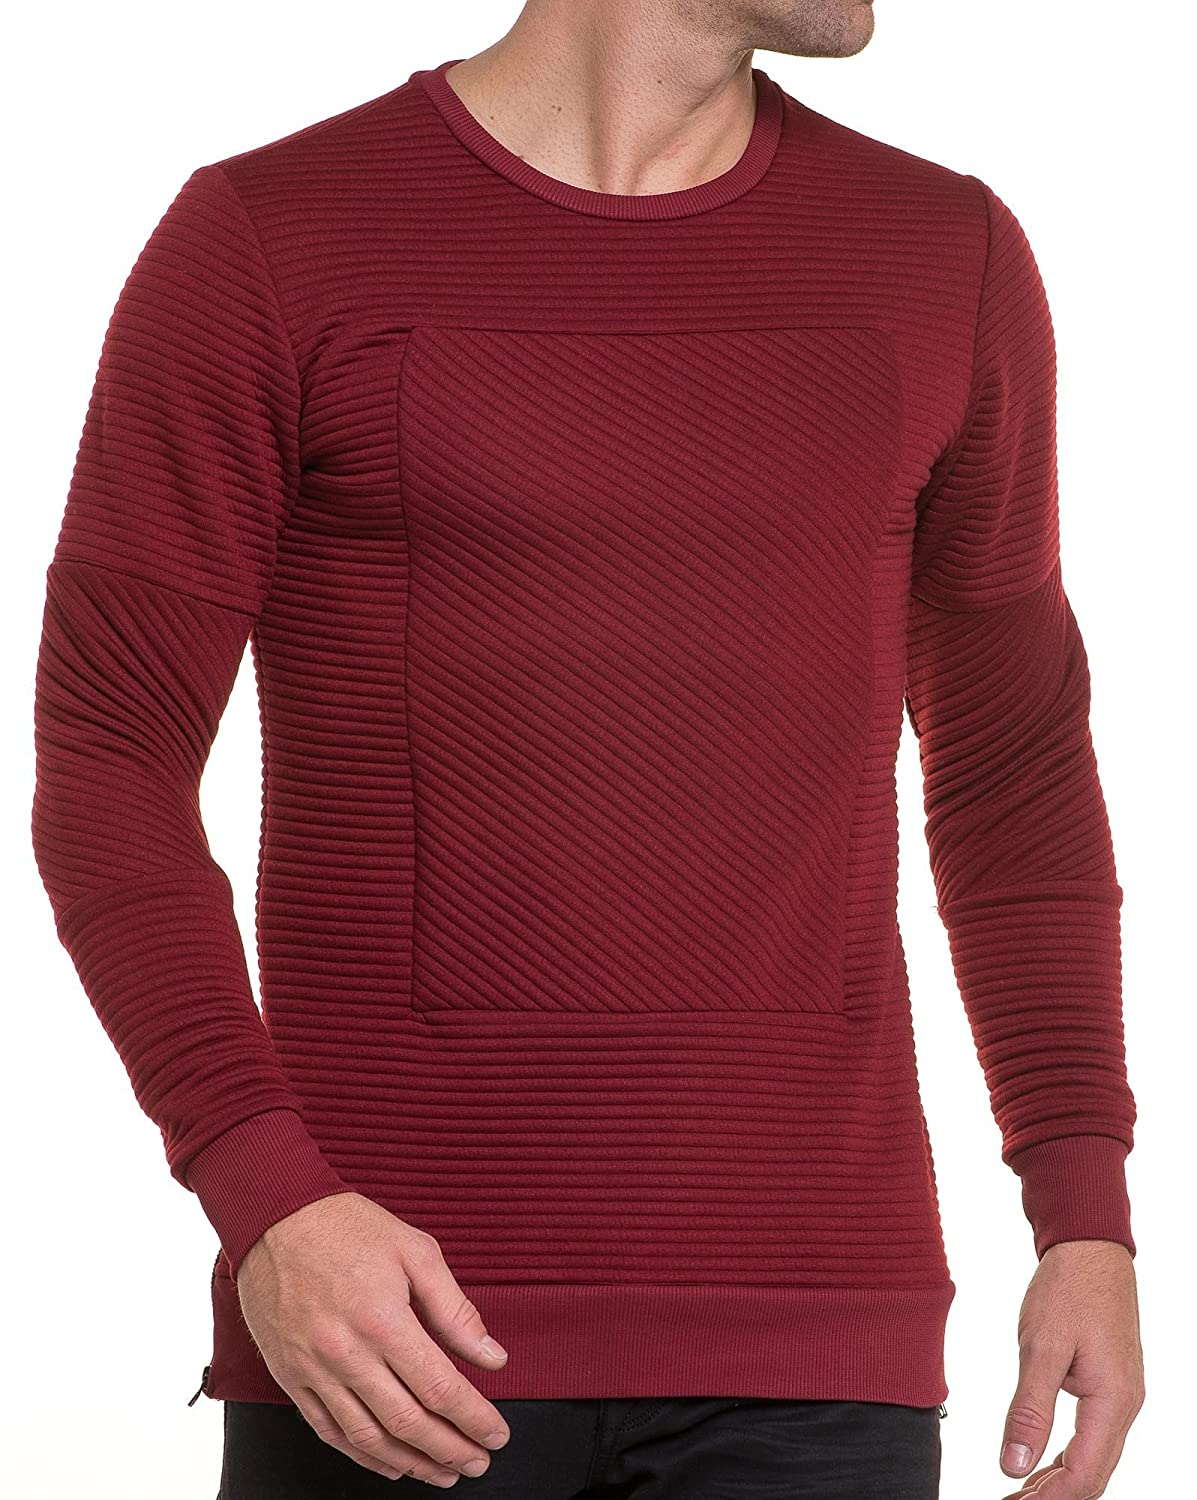 BLZ jeans - quilted red sweater man united oversize